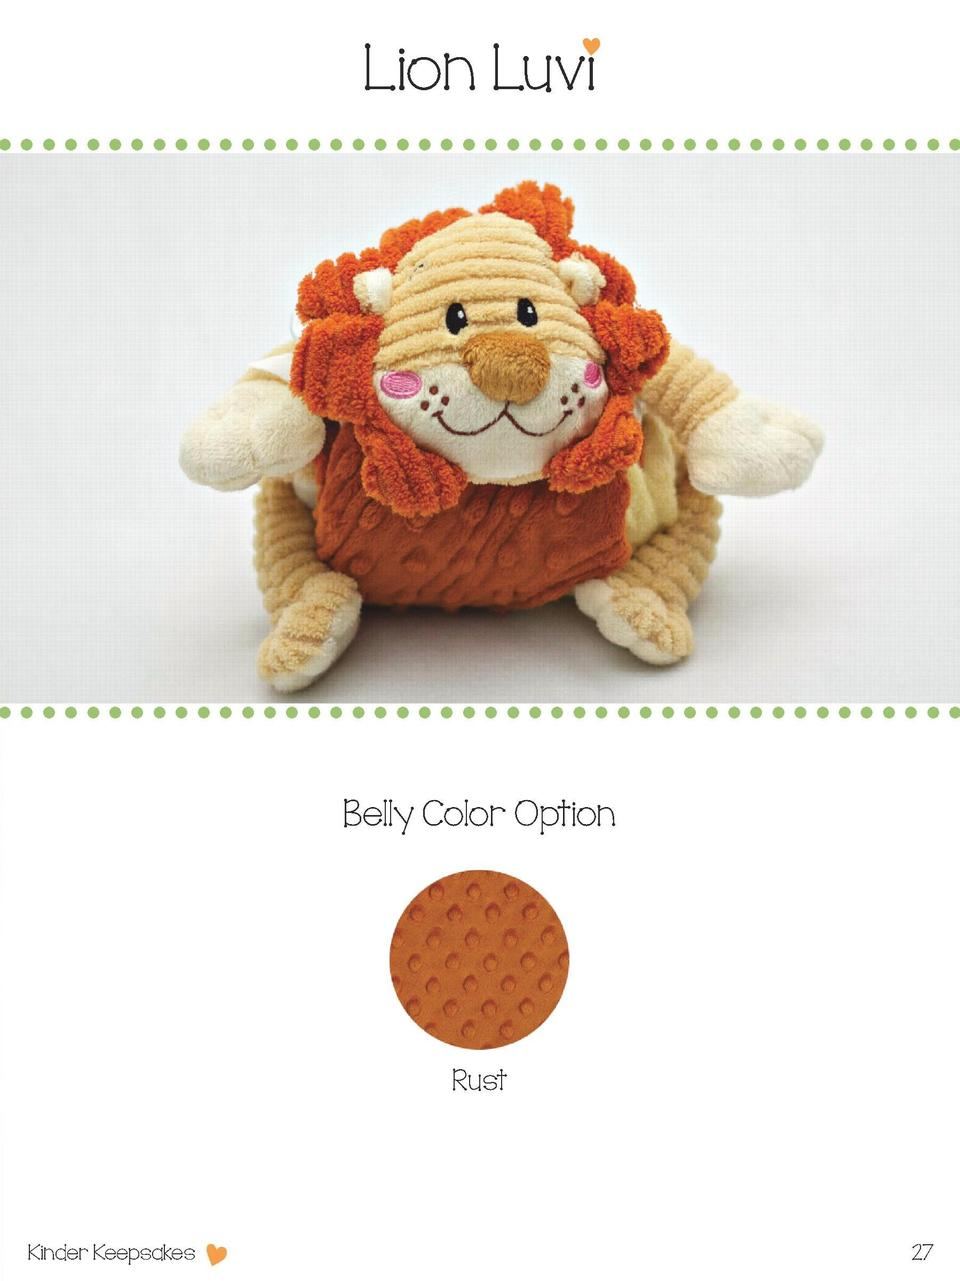 Lion Luvi  Belly Color Option  Rust  Kinder Keepsakes  27